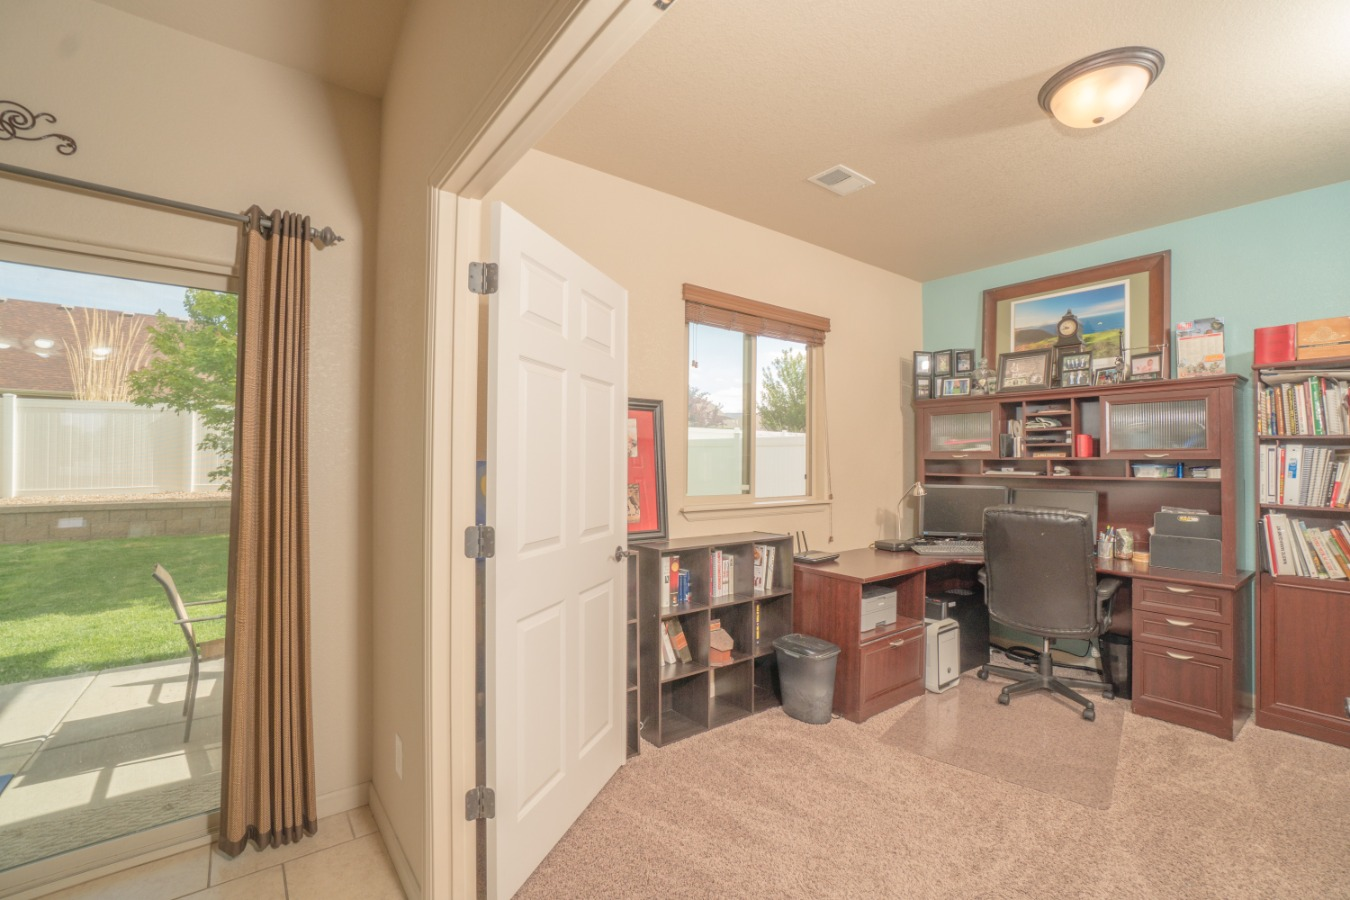 Need an Office, Bedroom, Craft Room, or Play Area?